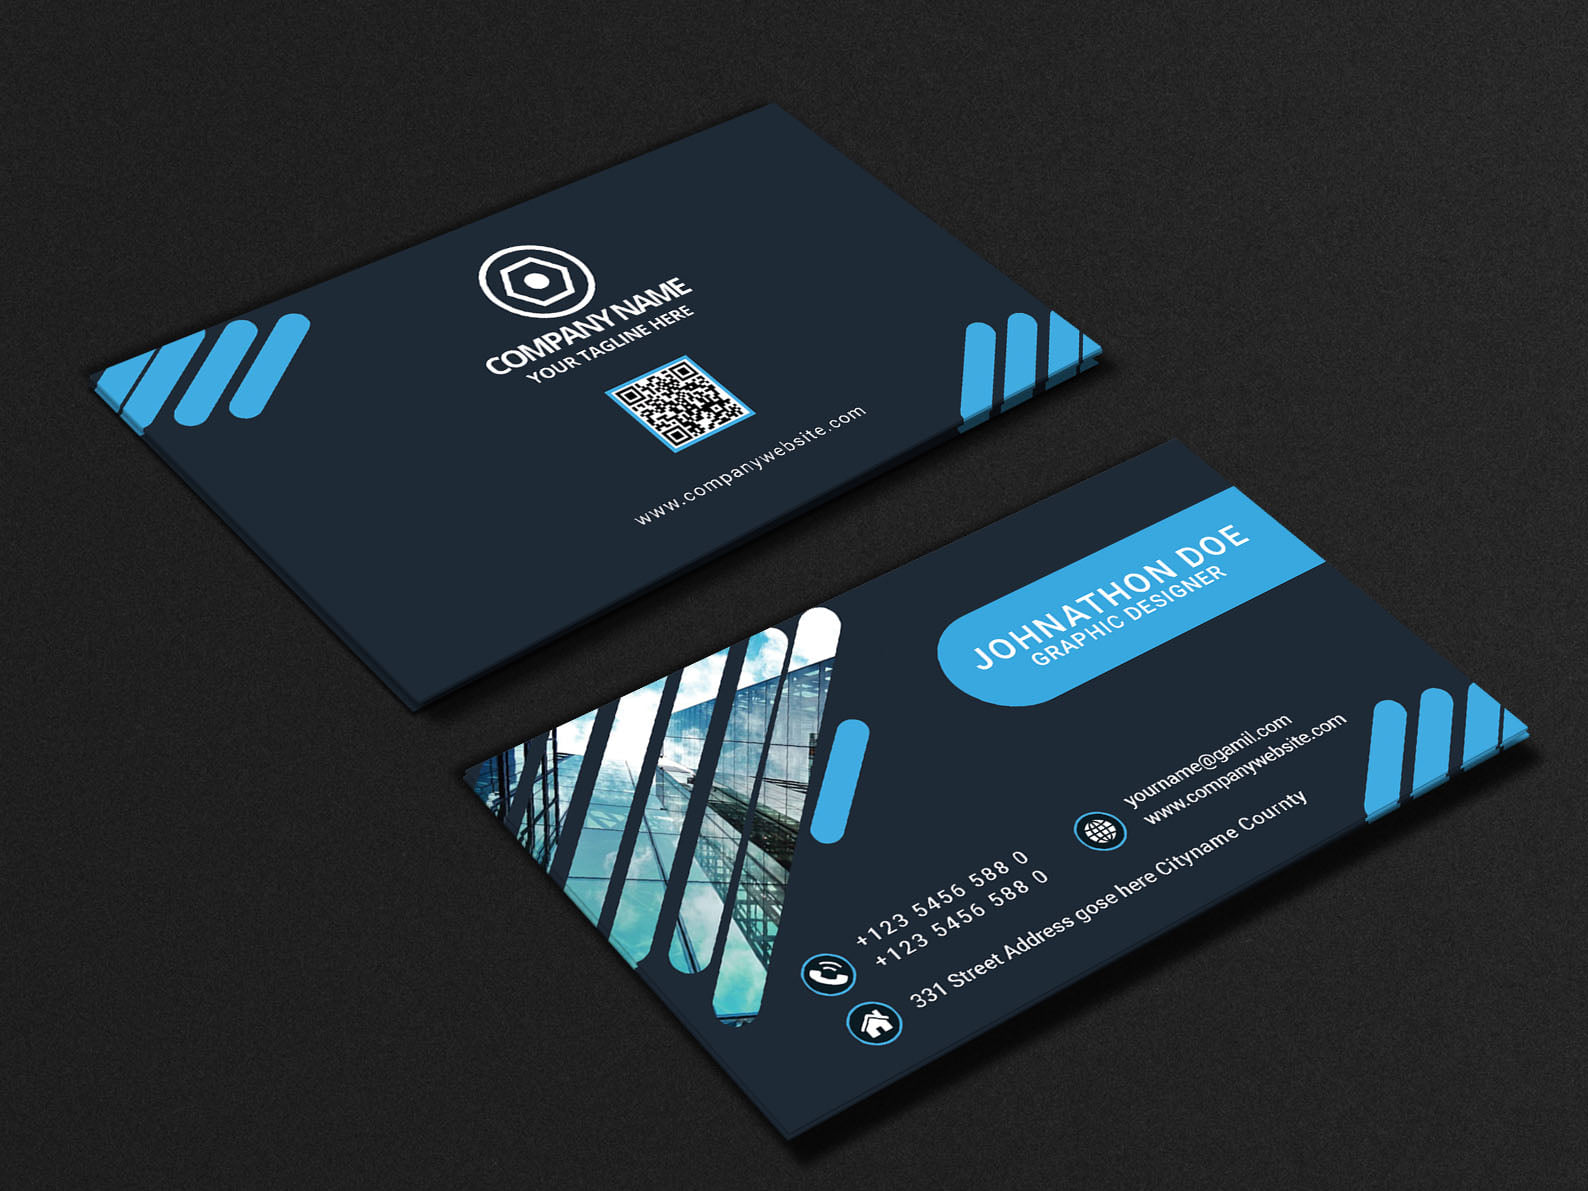 I will design an outstanding business card